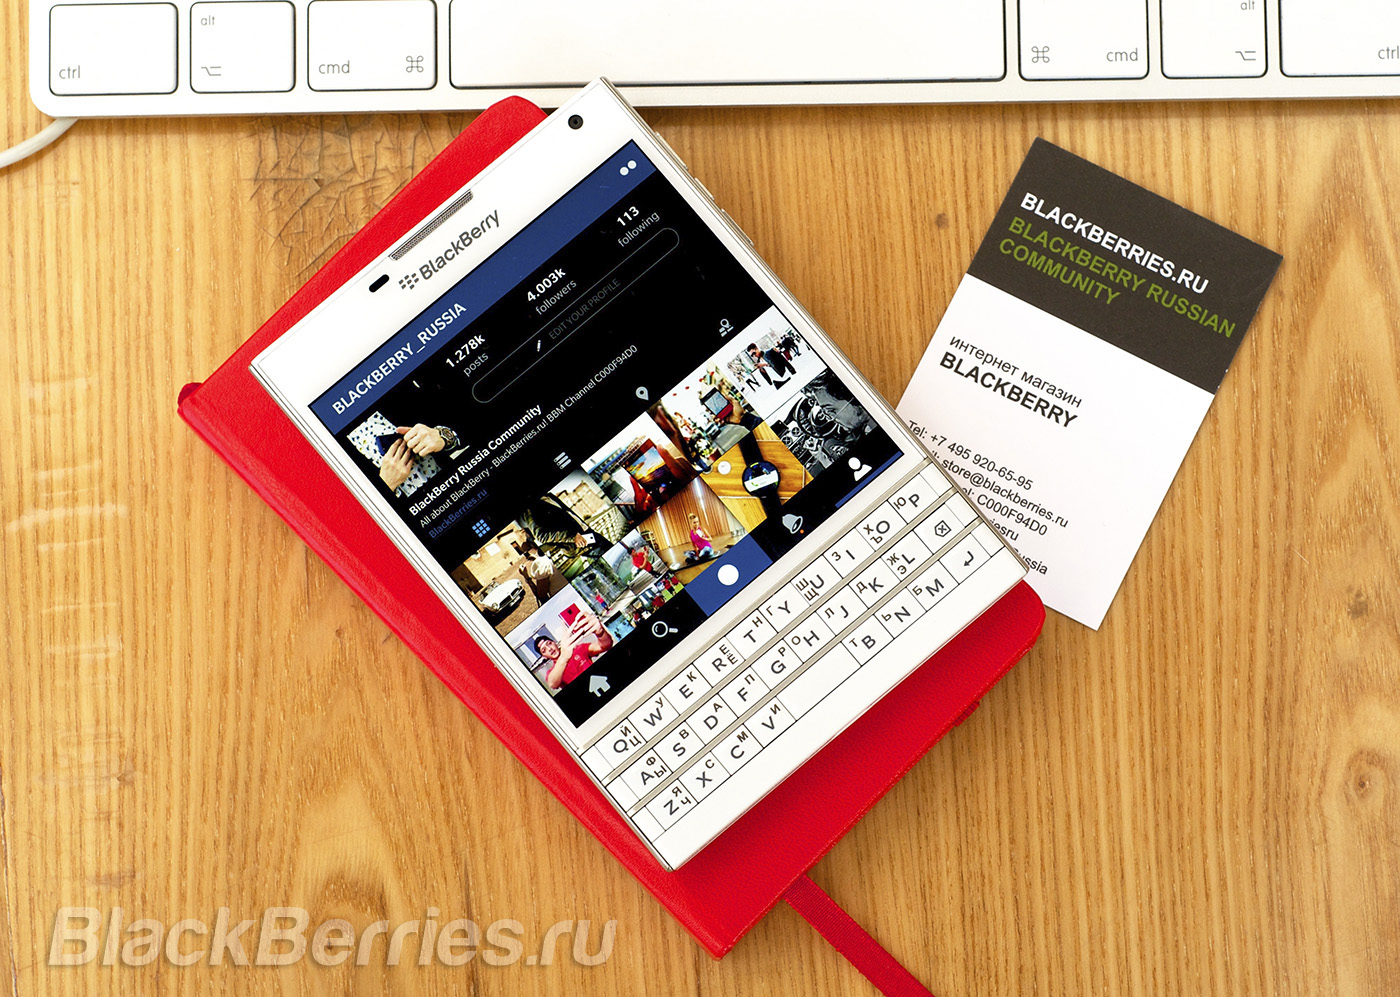 BlackBerry-Passport-App-17-07-04